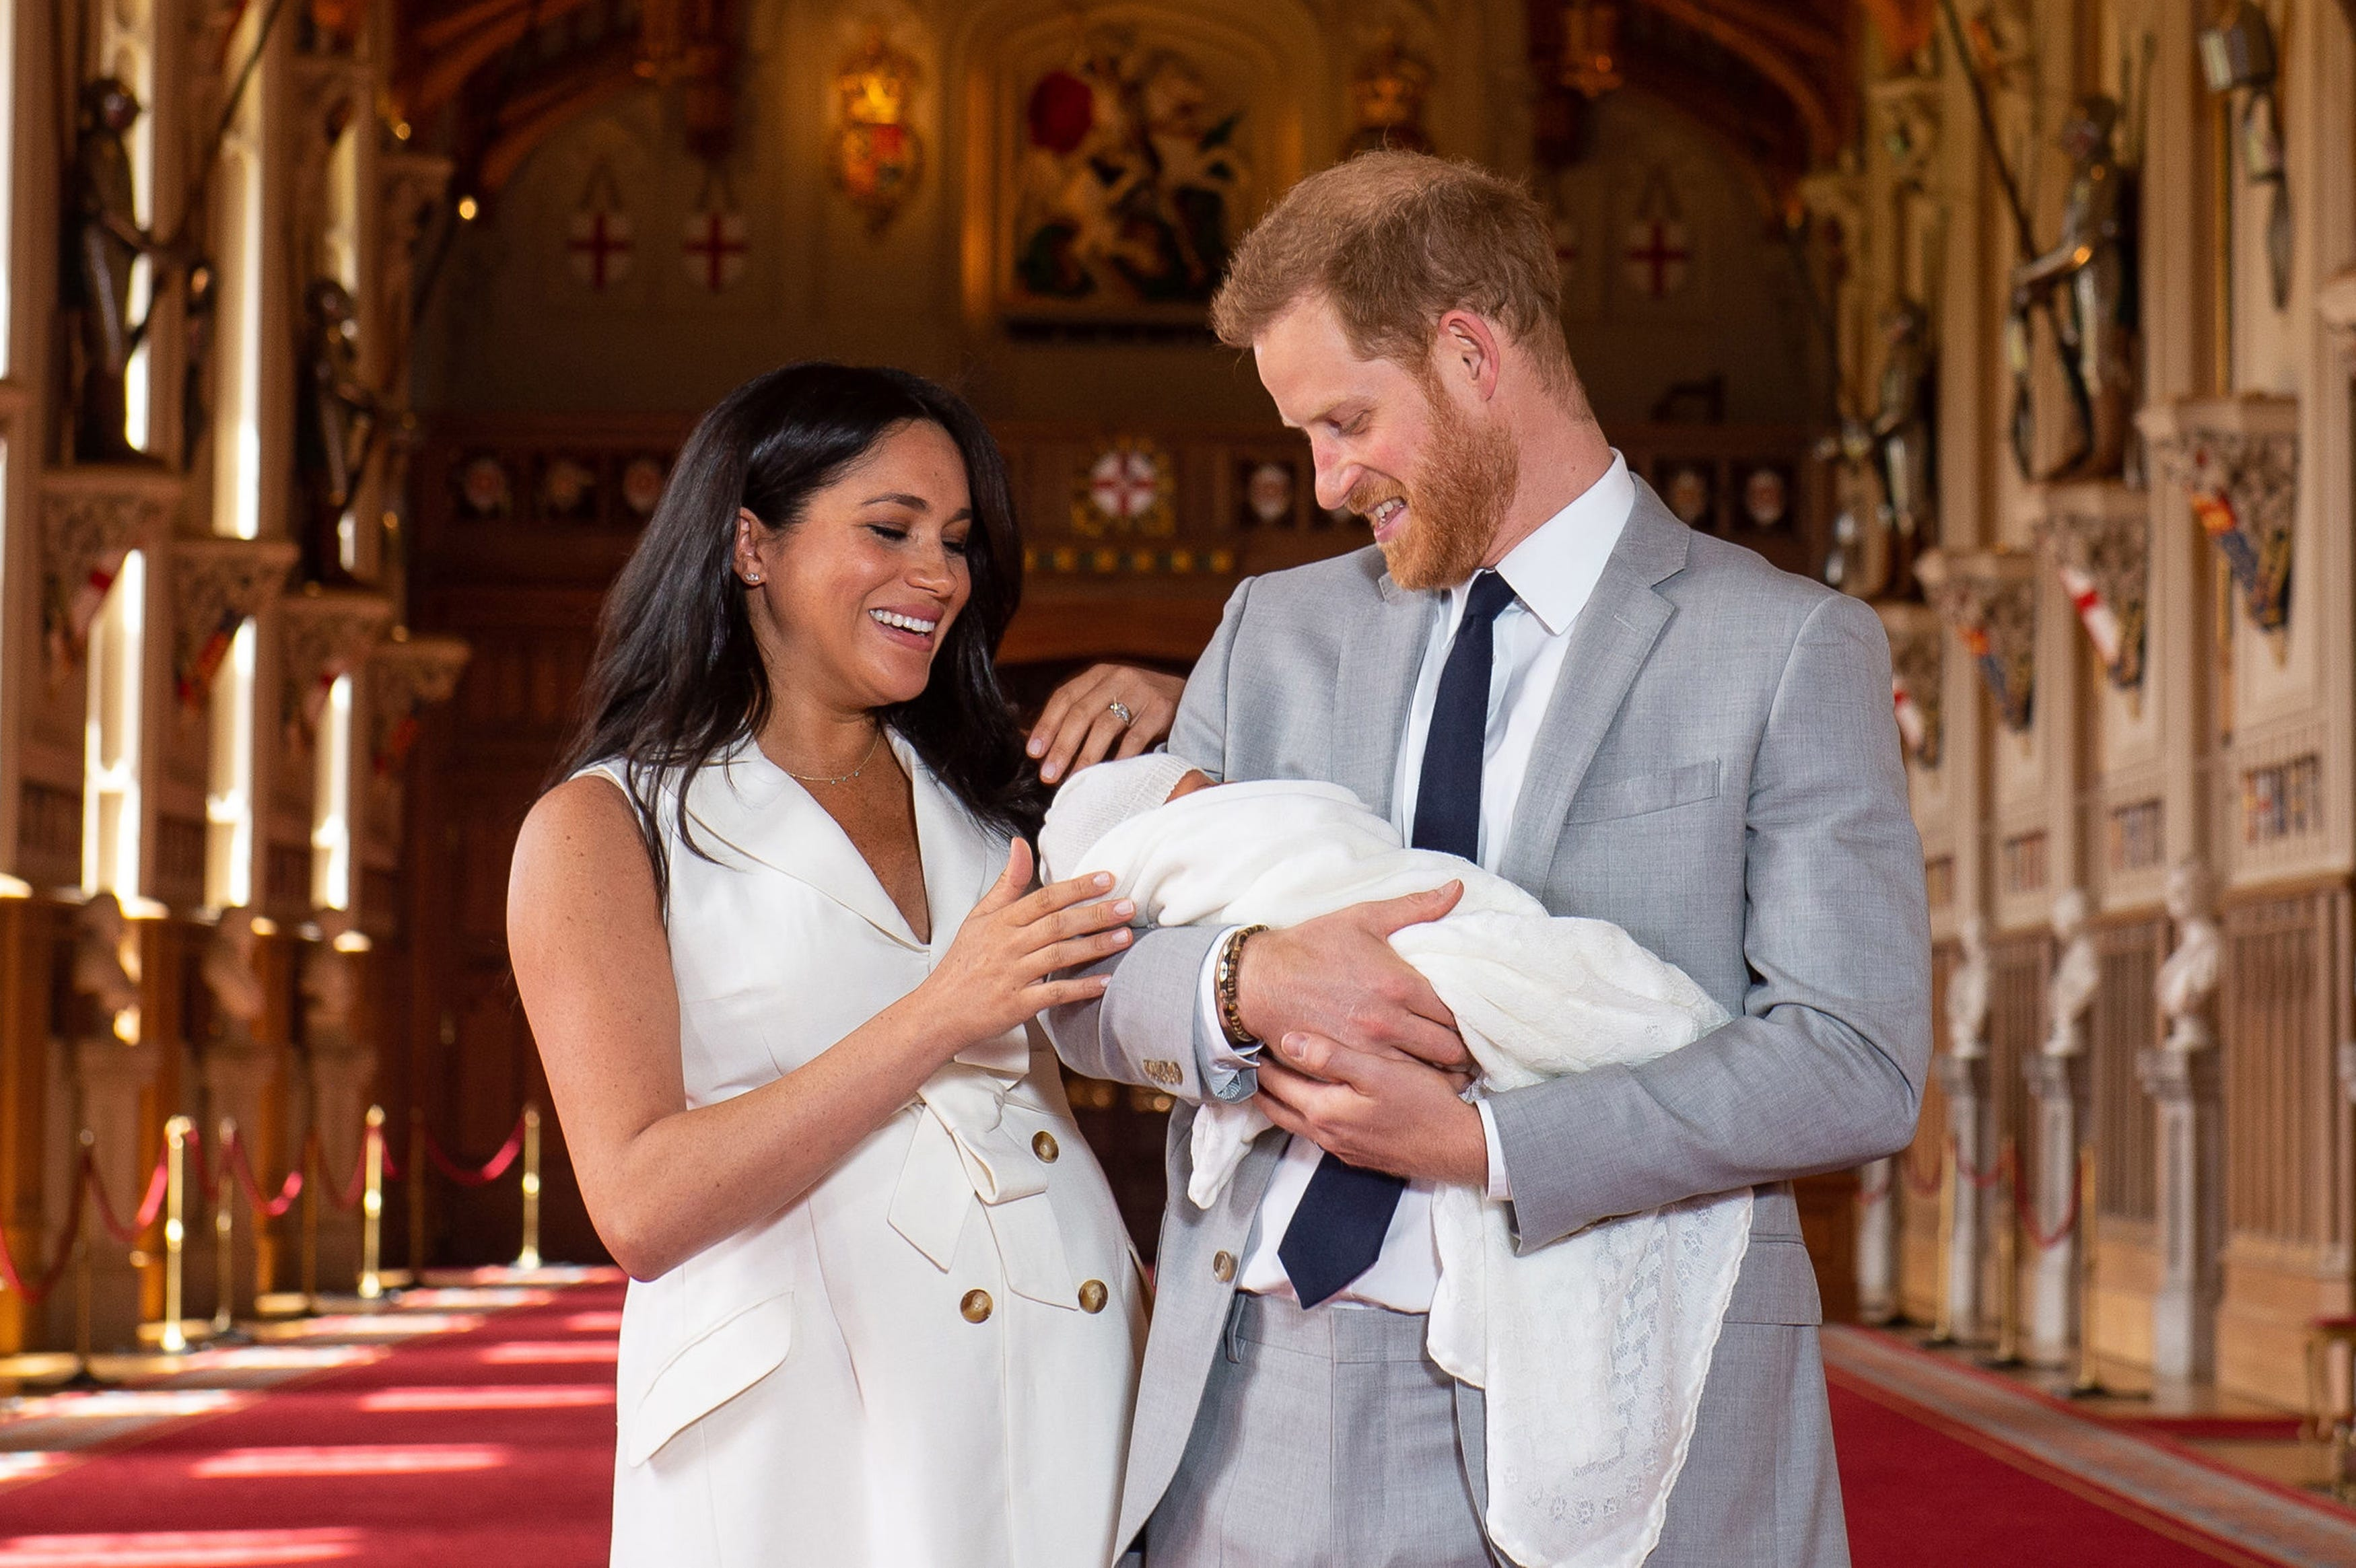 Royal baby Archie's birth certificate shows he was born in London hospital